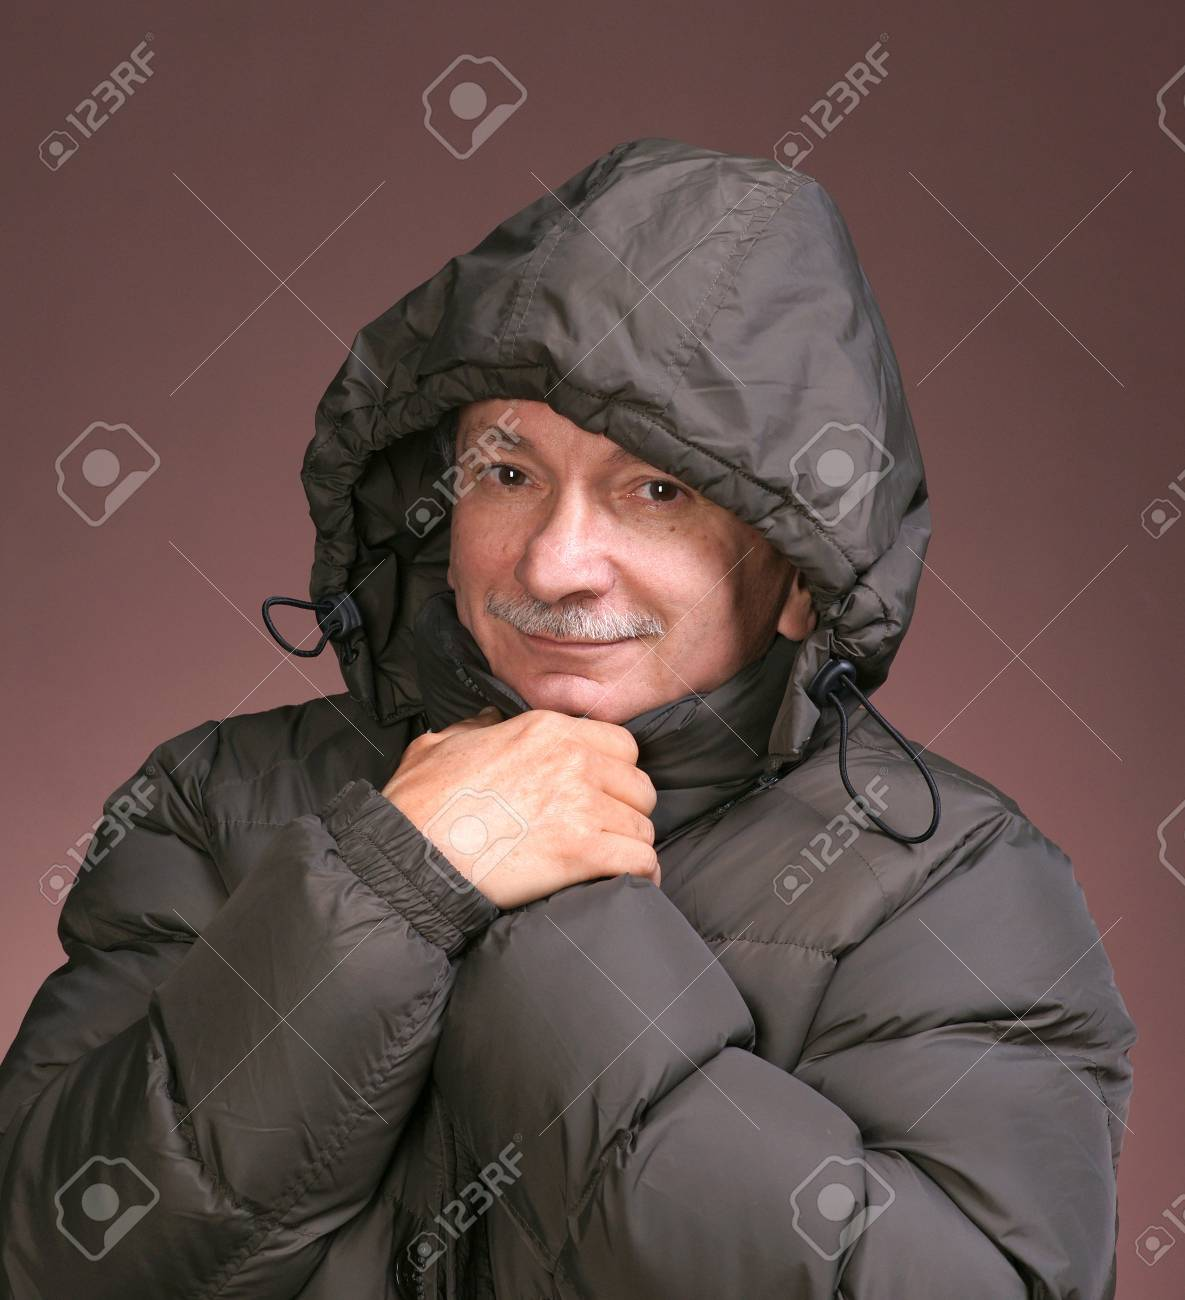 Close-up portrait of a senior man in winter clothing on a brown background Stock Photo - 17016955